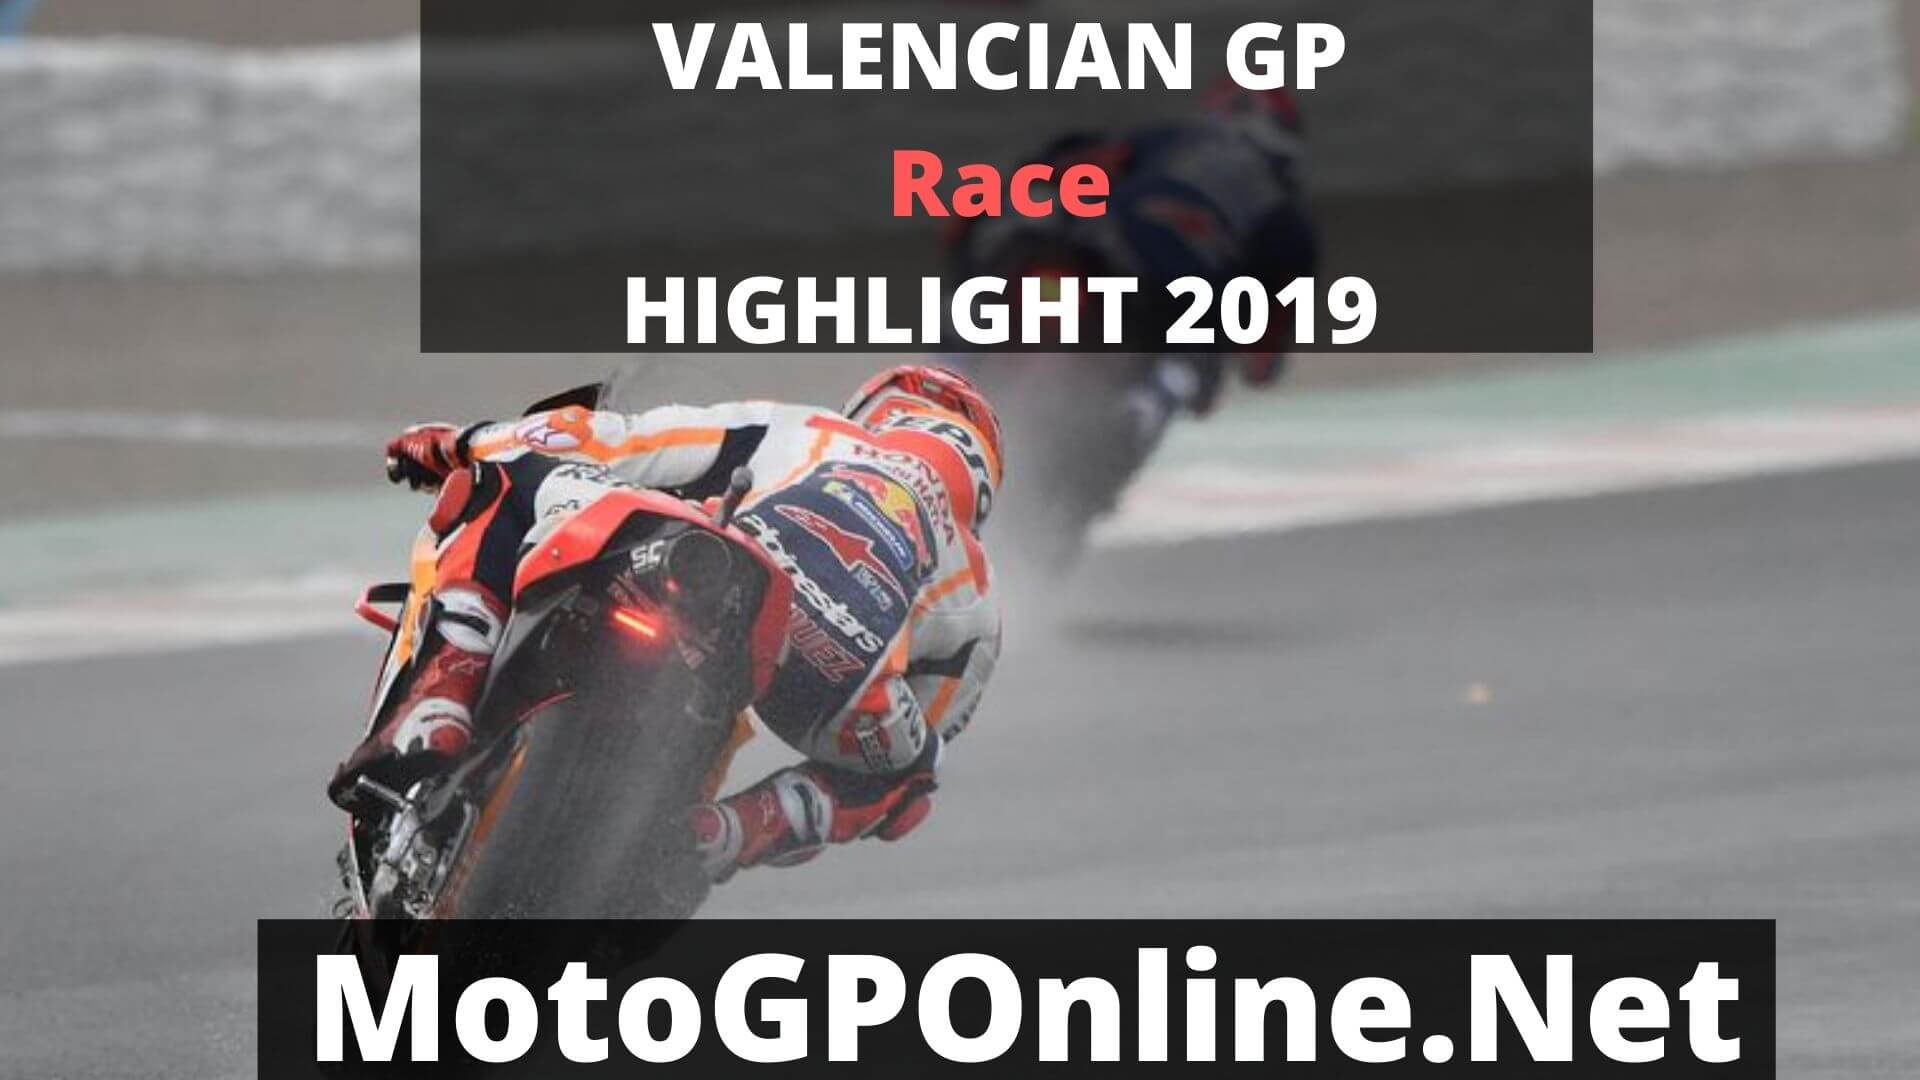 MotoGP Valencian GP Highlights 2019